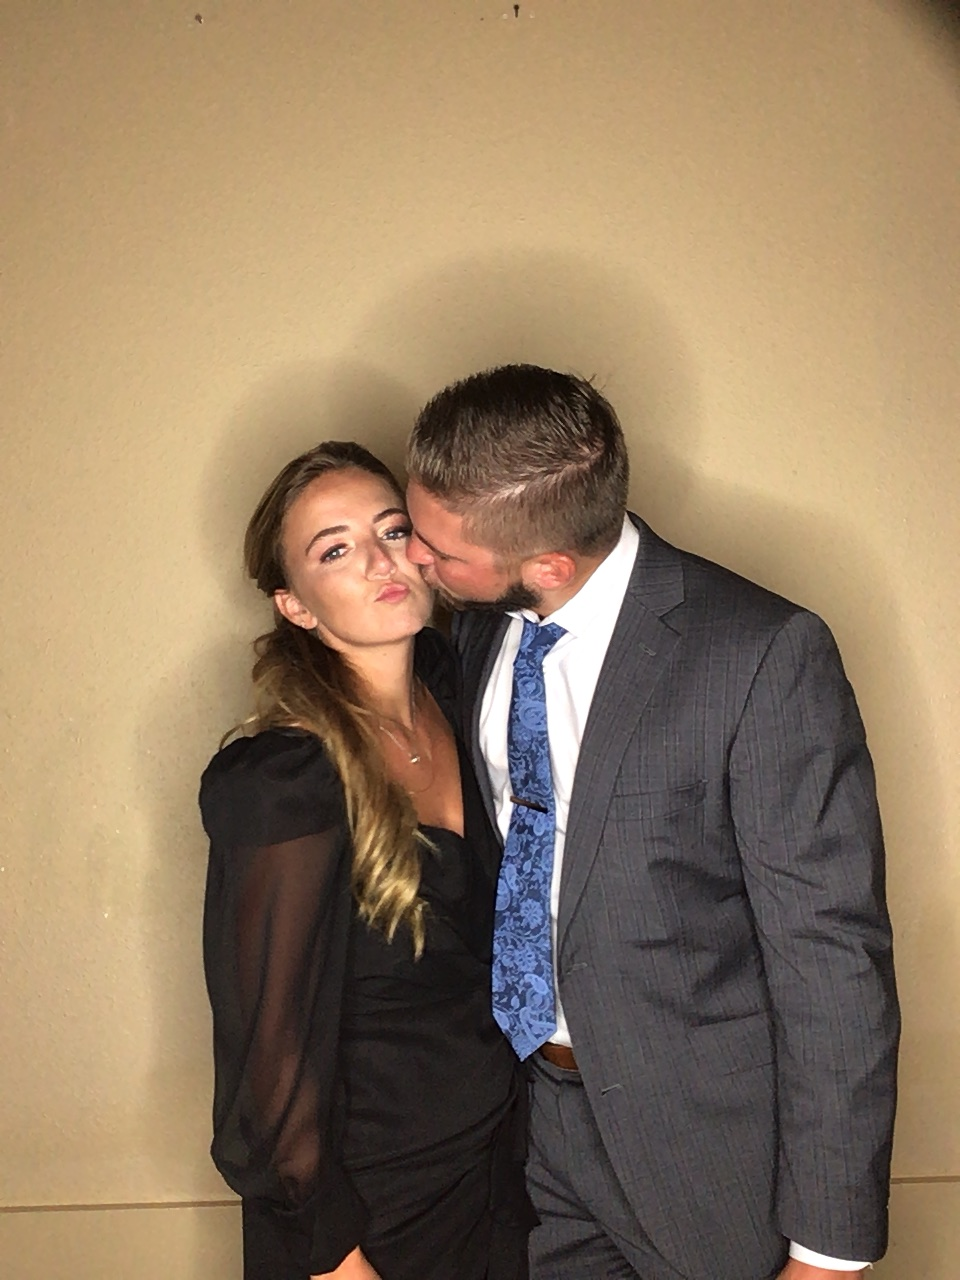 Photo Booth Pose - Kiss on the cheek